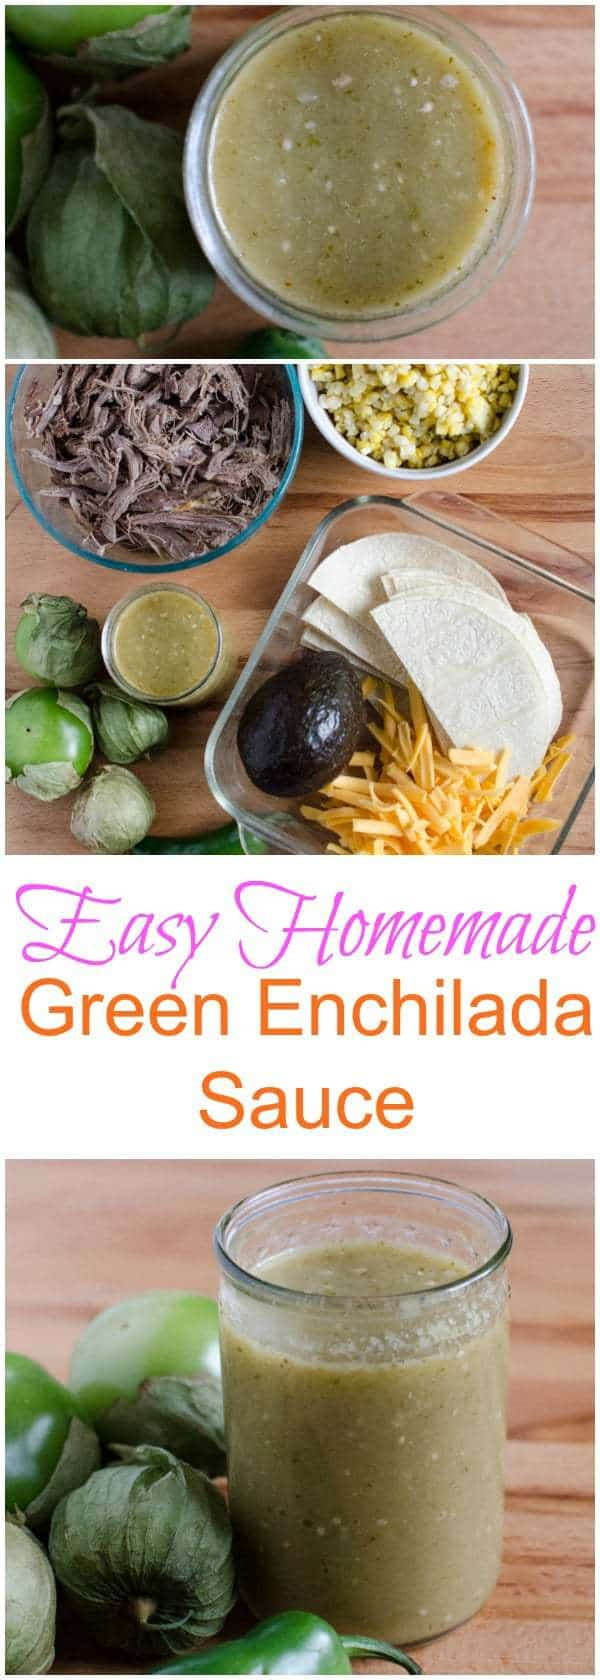 Easy Homemade Green Enchilada Sauce Recipe (made in the blender!)